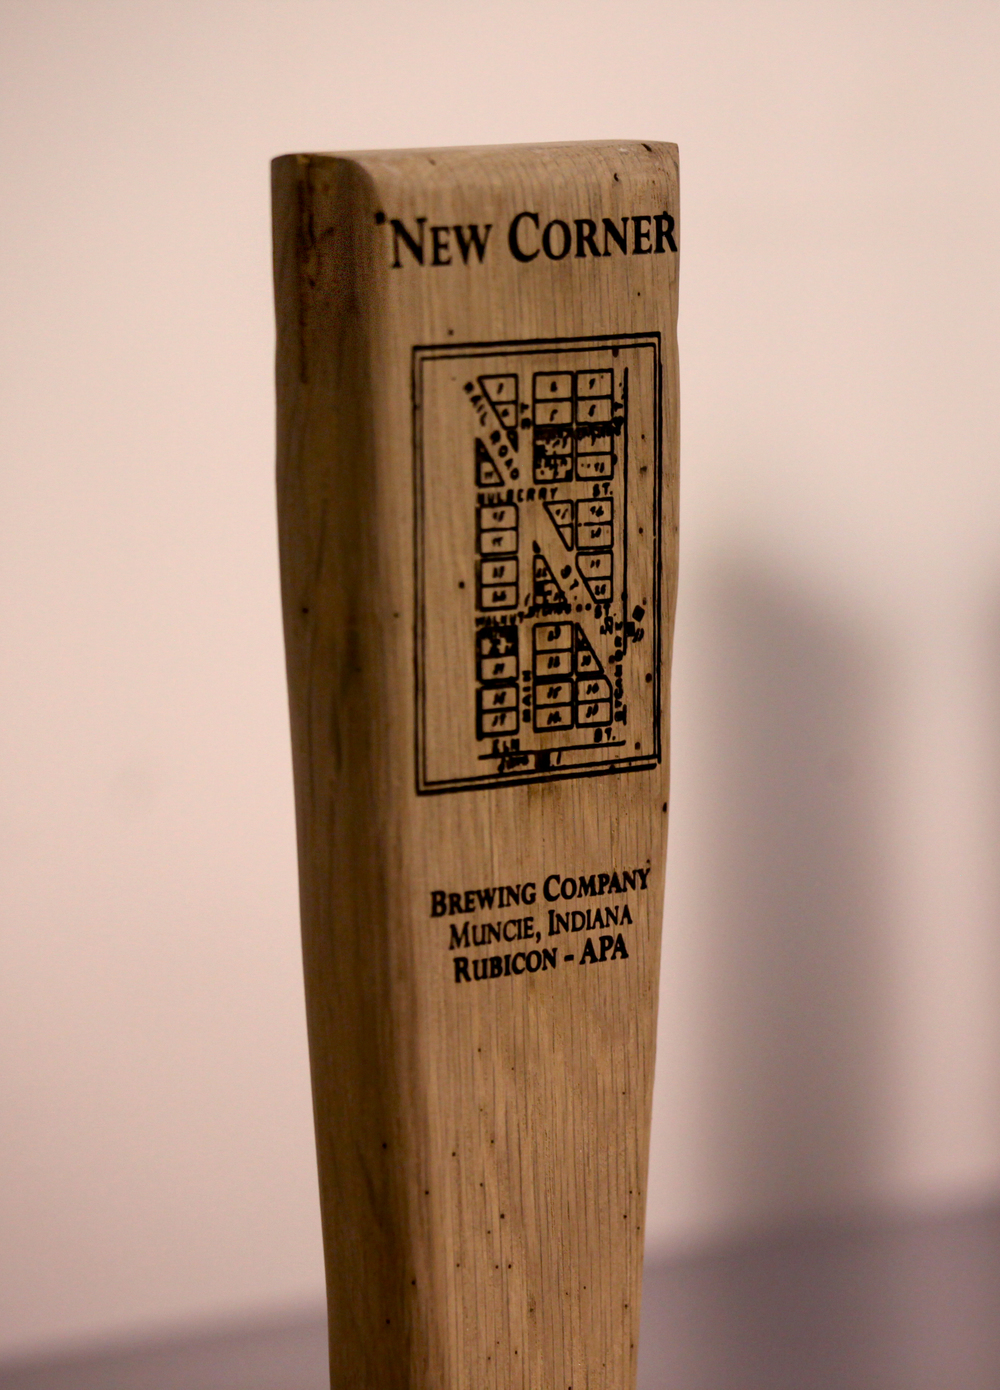 Home — New Corner Brewing Co.